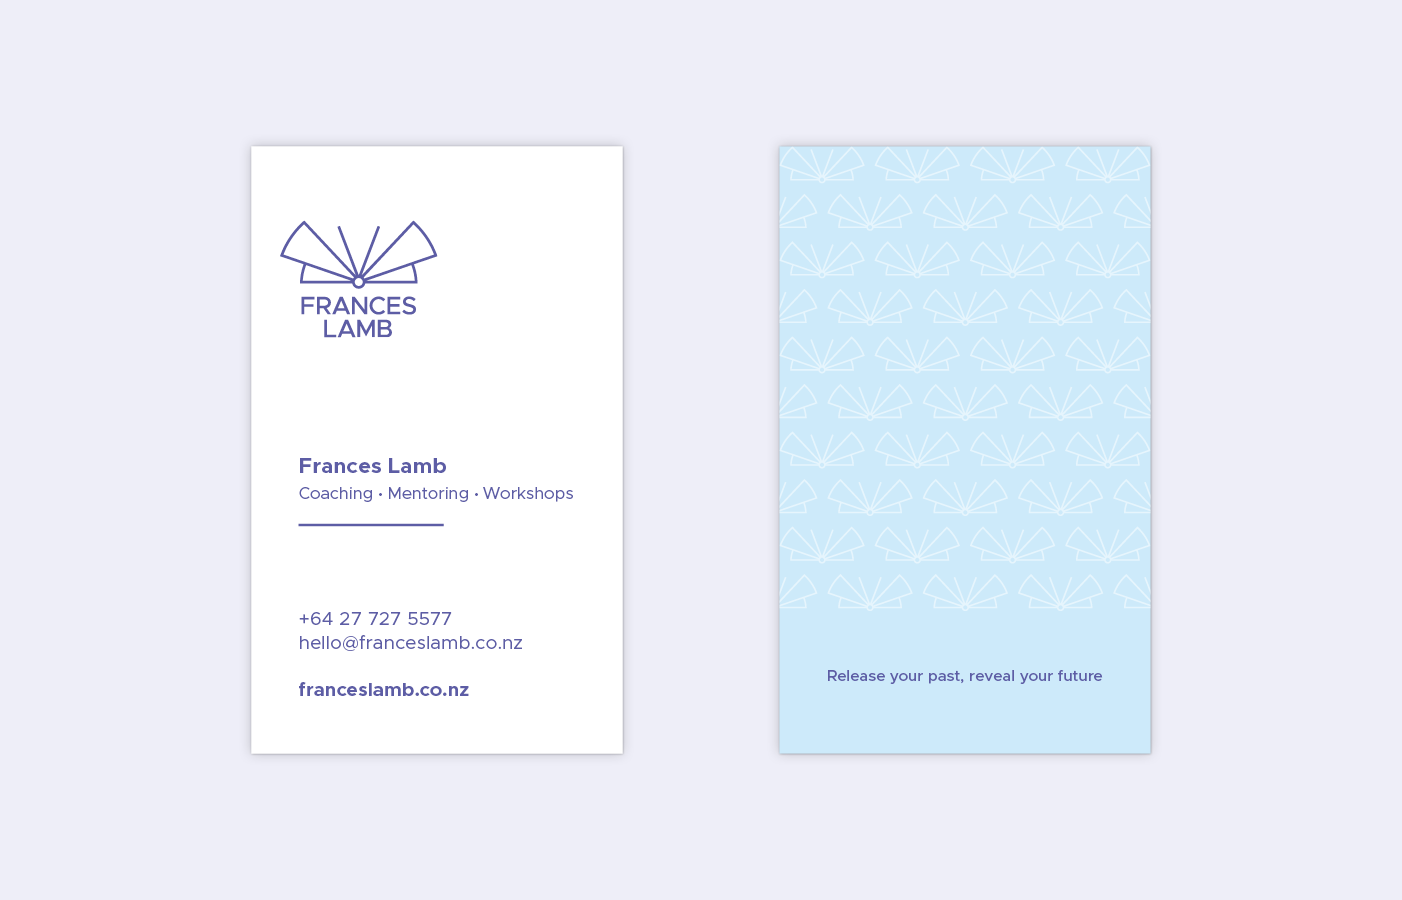 Frances Lamb business cards